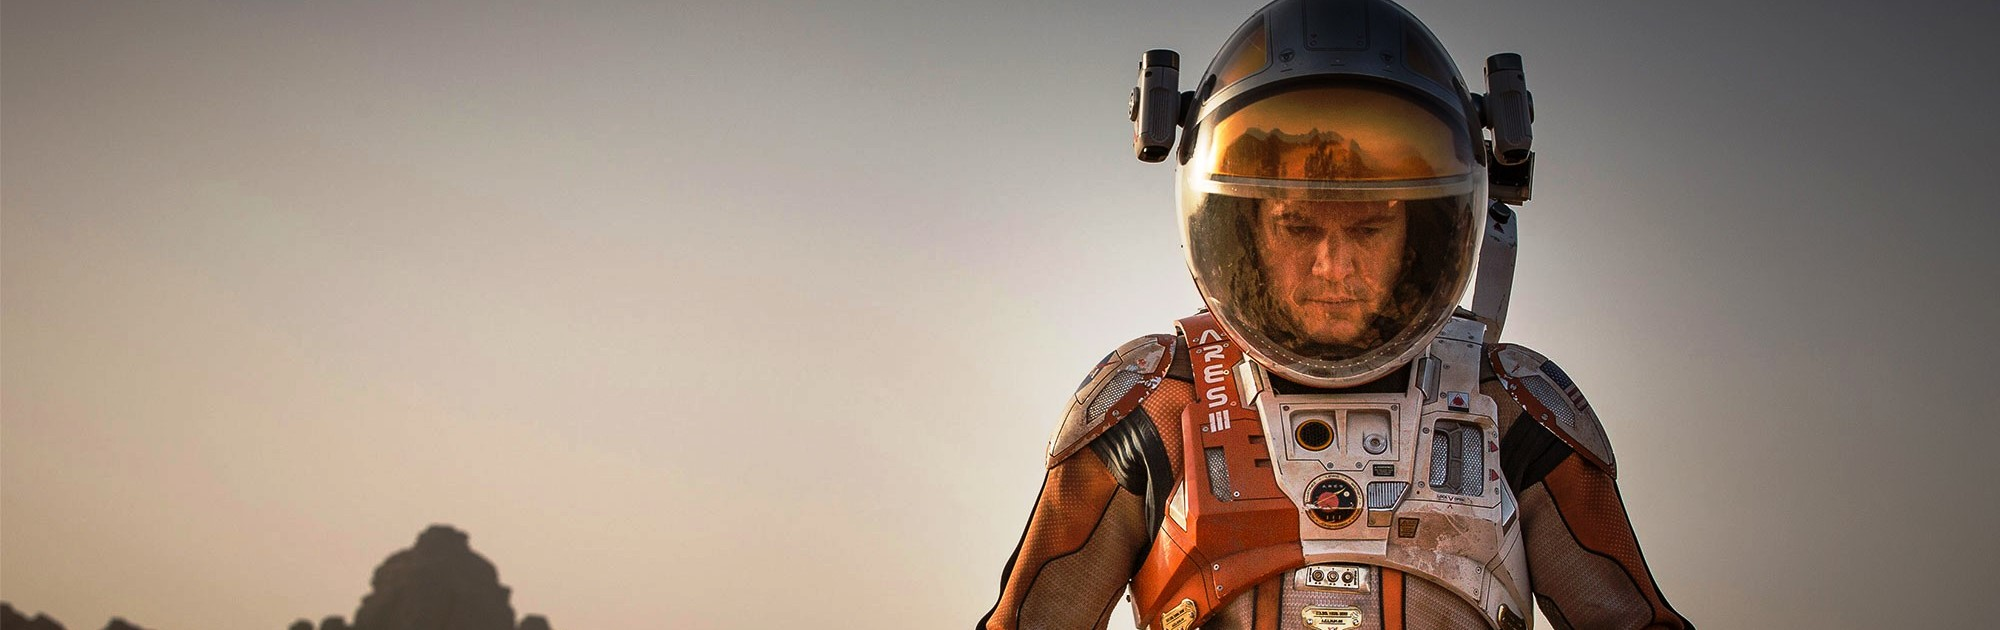 The Martian Matt Damon 20th Century Fox image posted on SpaceFlight Insider